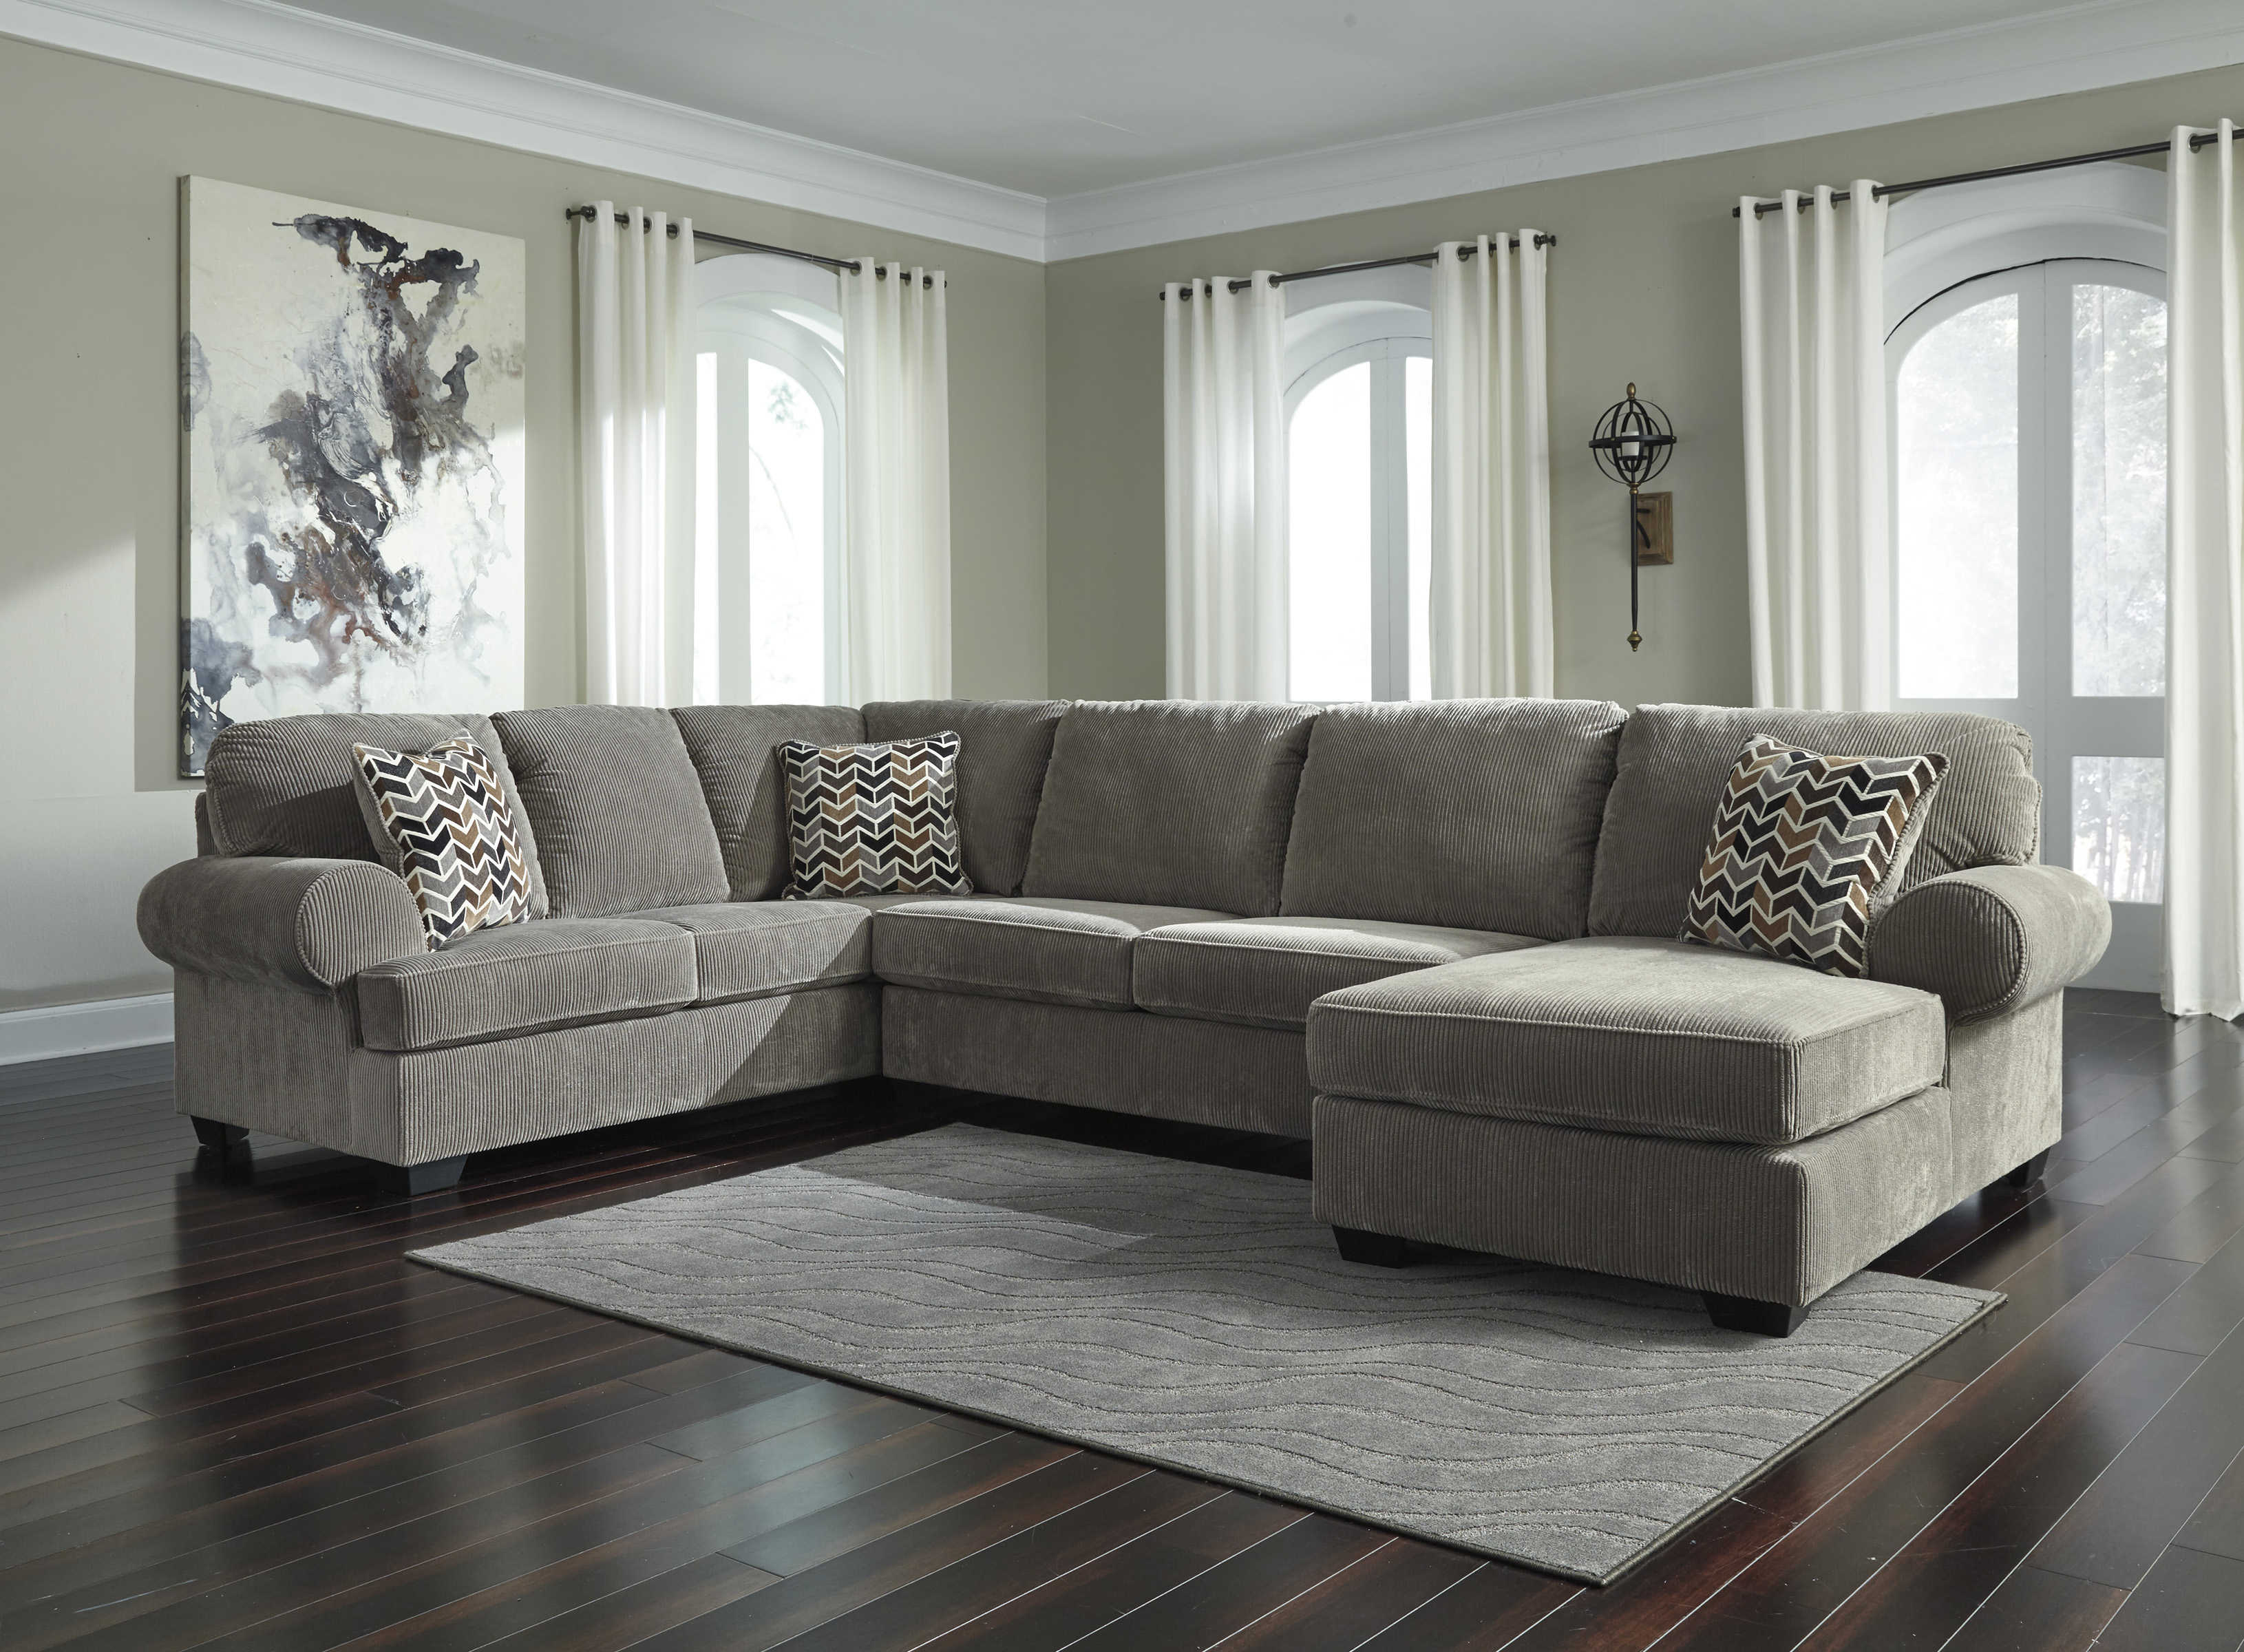 Ashley Furniture Jinllingsly Gray Raf Chaise Sectional